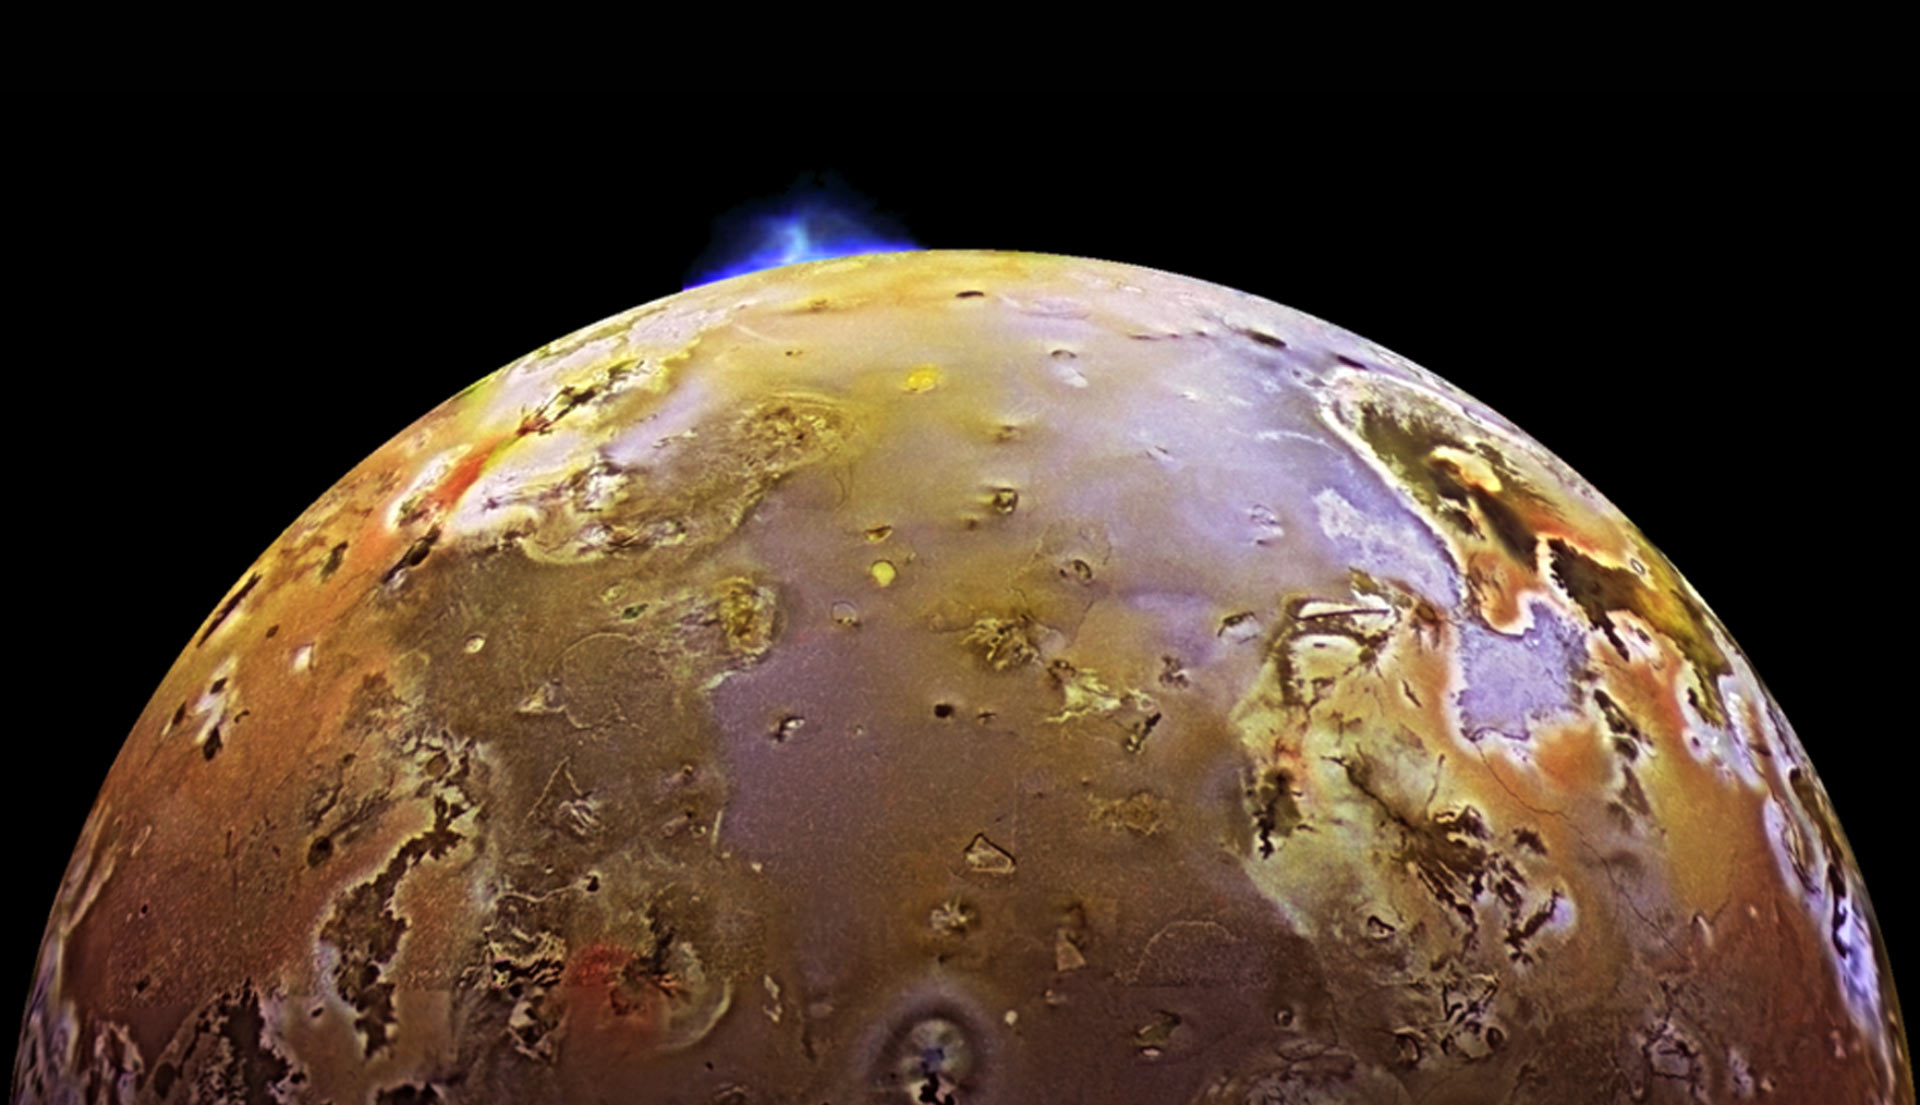 Juno discovered a new volcano on Io 36